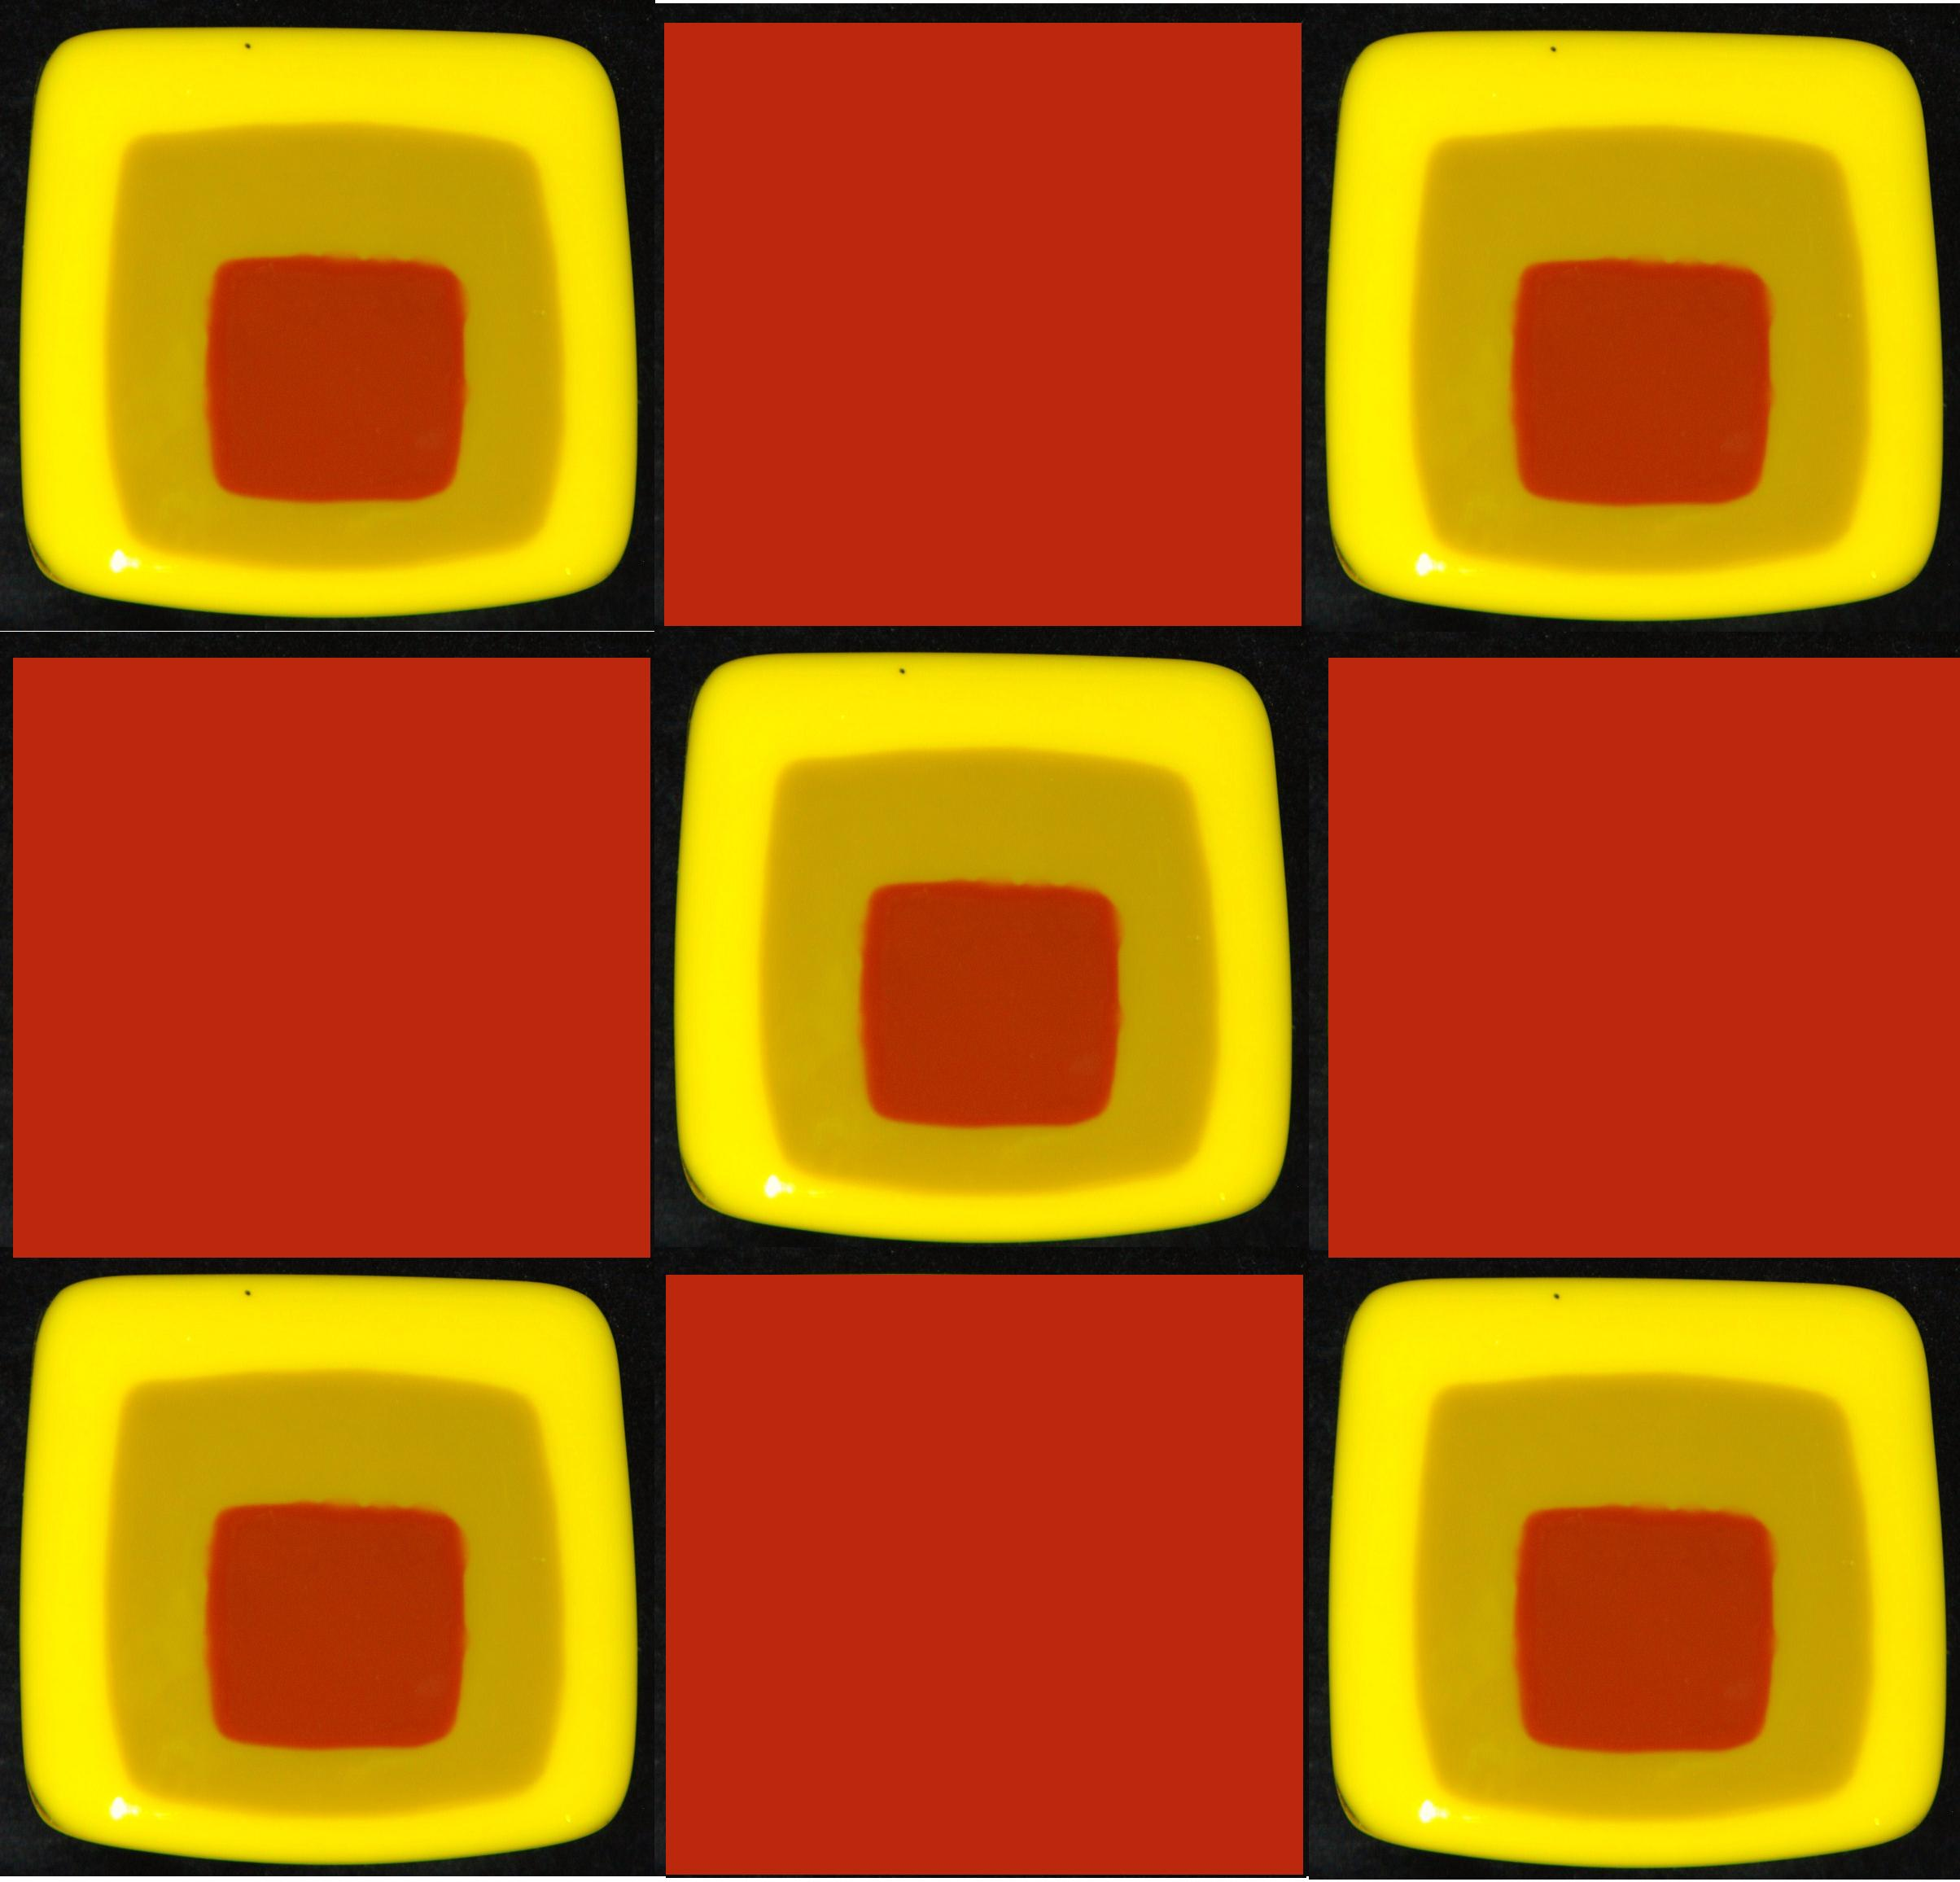 1960s tiles with red.jpg